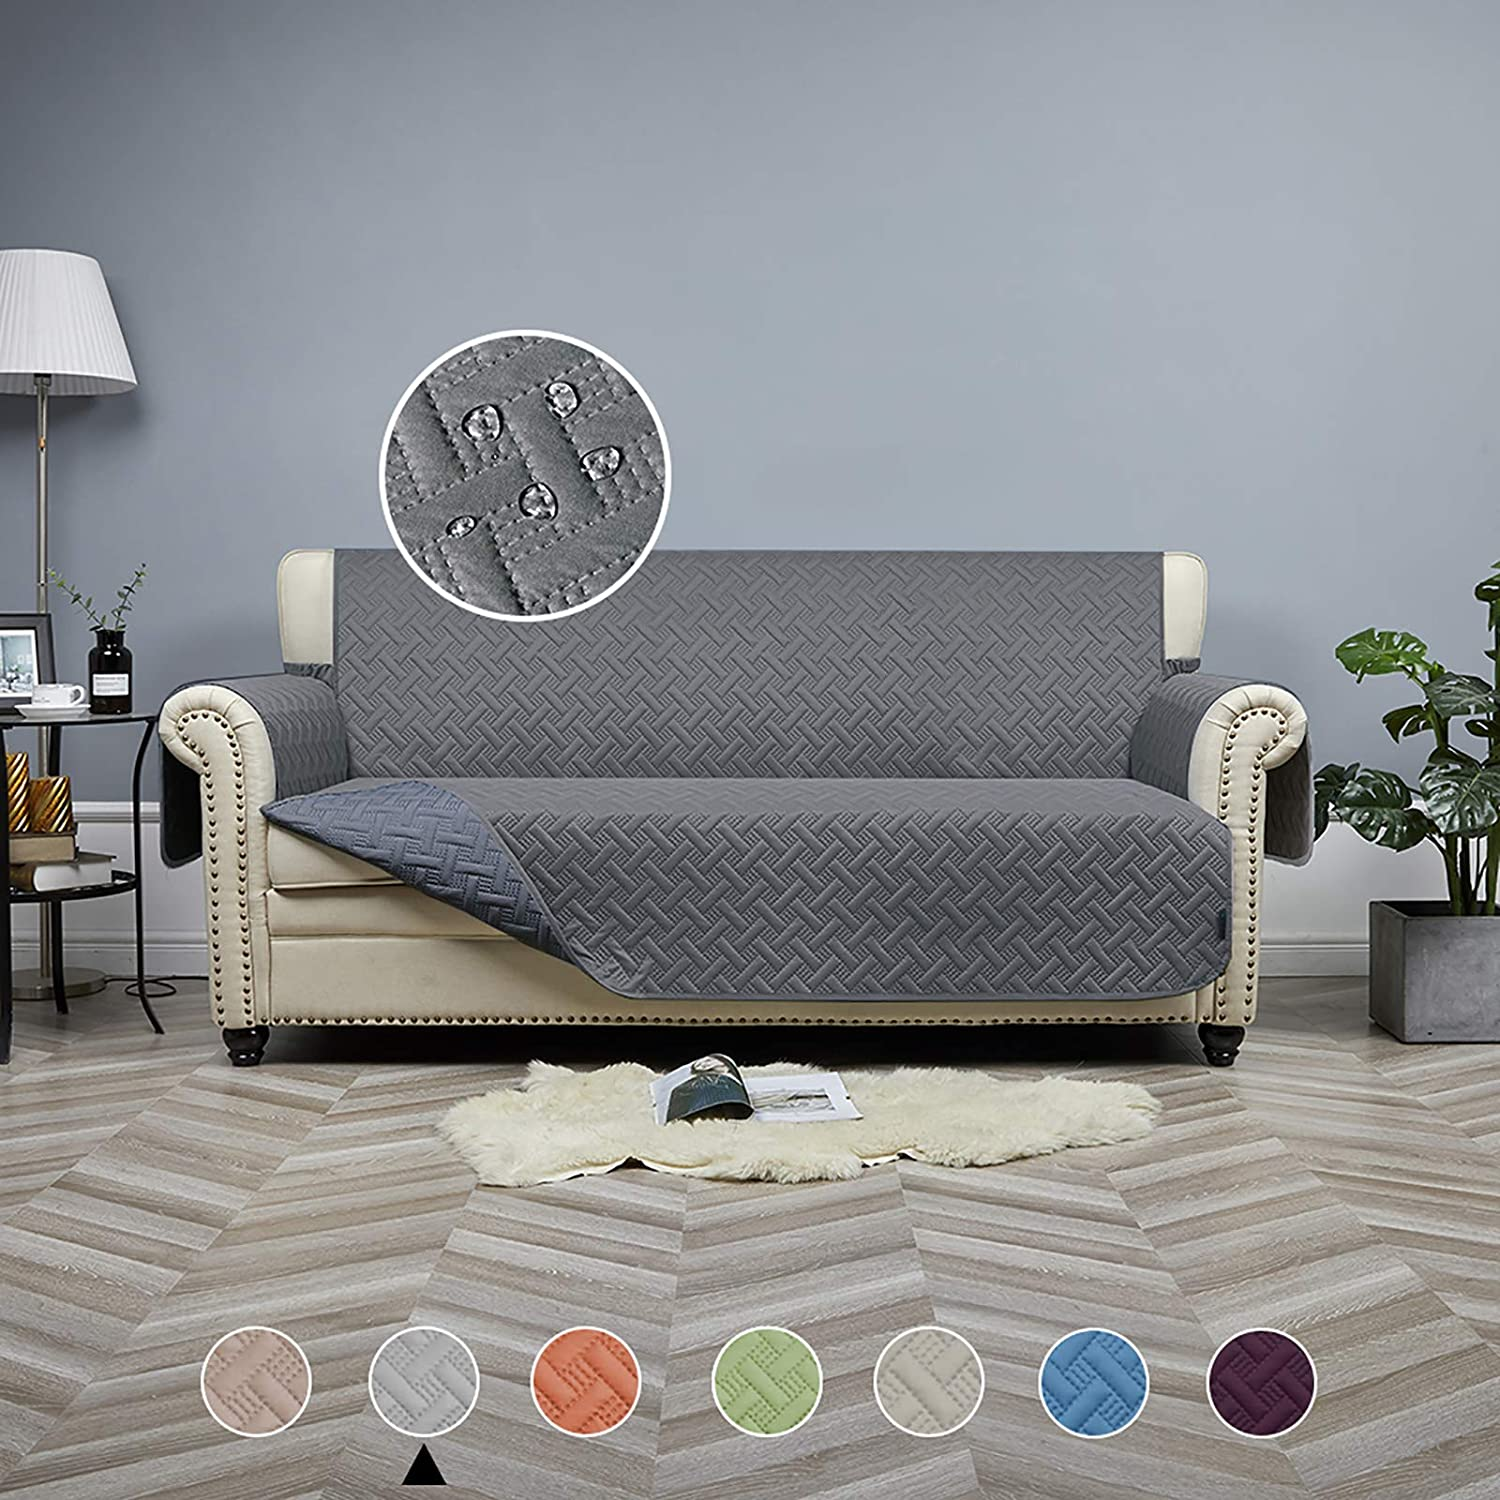 """STONECREST Sofa Cover Waterproof, Reversible Slipcover Washable Furniture Protector for Kids, Seat Width Up to 68 Inches with Straps (Dark Grey/Grey, 68"""" Sofa)"""